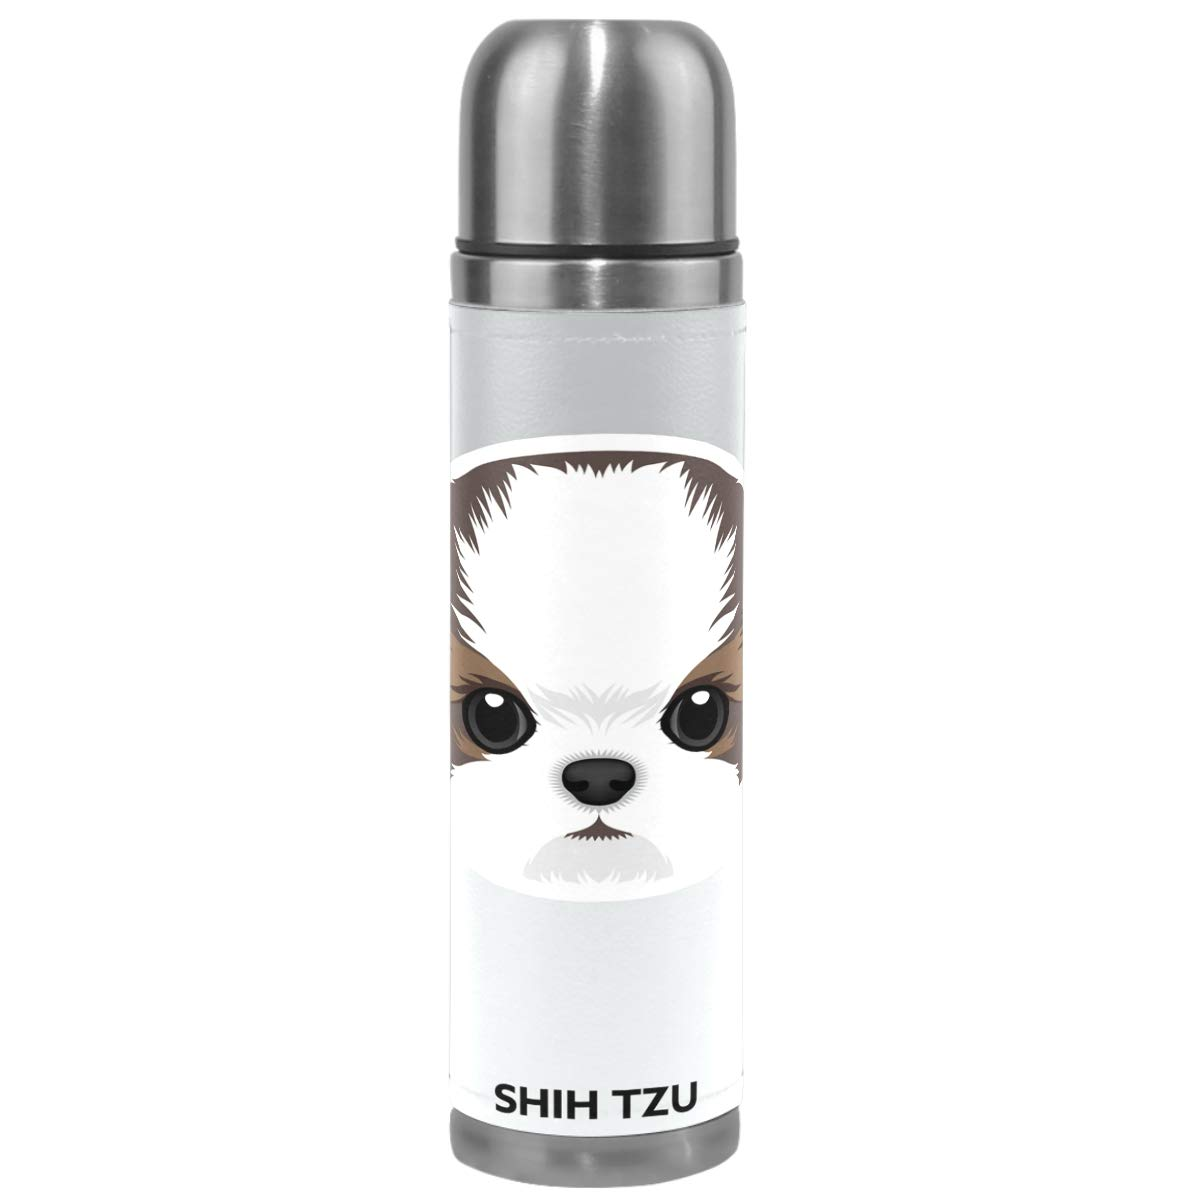 Wamika Cute Dog Pattern Vacuum Insulated Stainless Steel Water Bottle, Shih Tzu Puppy Funny Pets Animals Sports Coffee Travel Mug Thermos Cup Genuine Leather Cover Double Walled BPA Free 17 OZ by Wamika (Image #1)